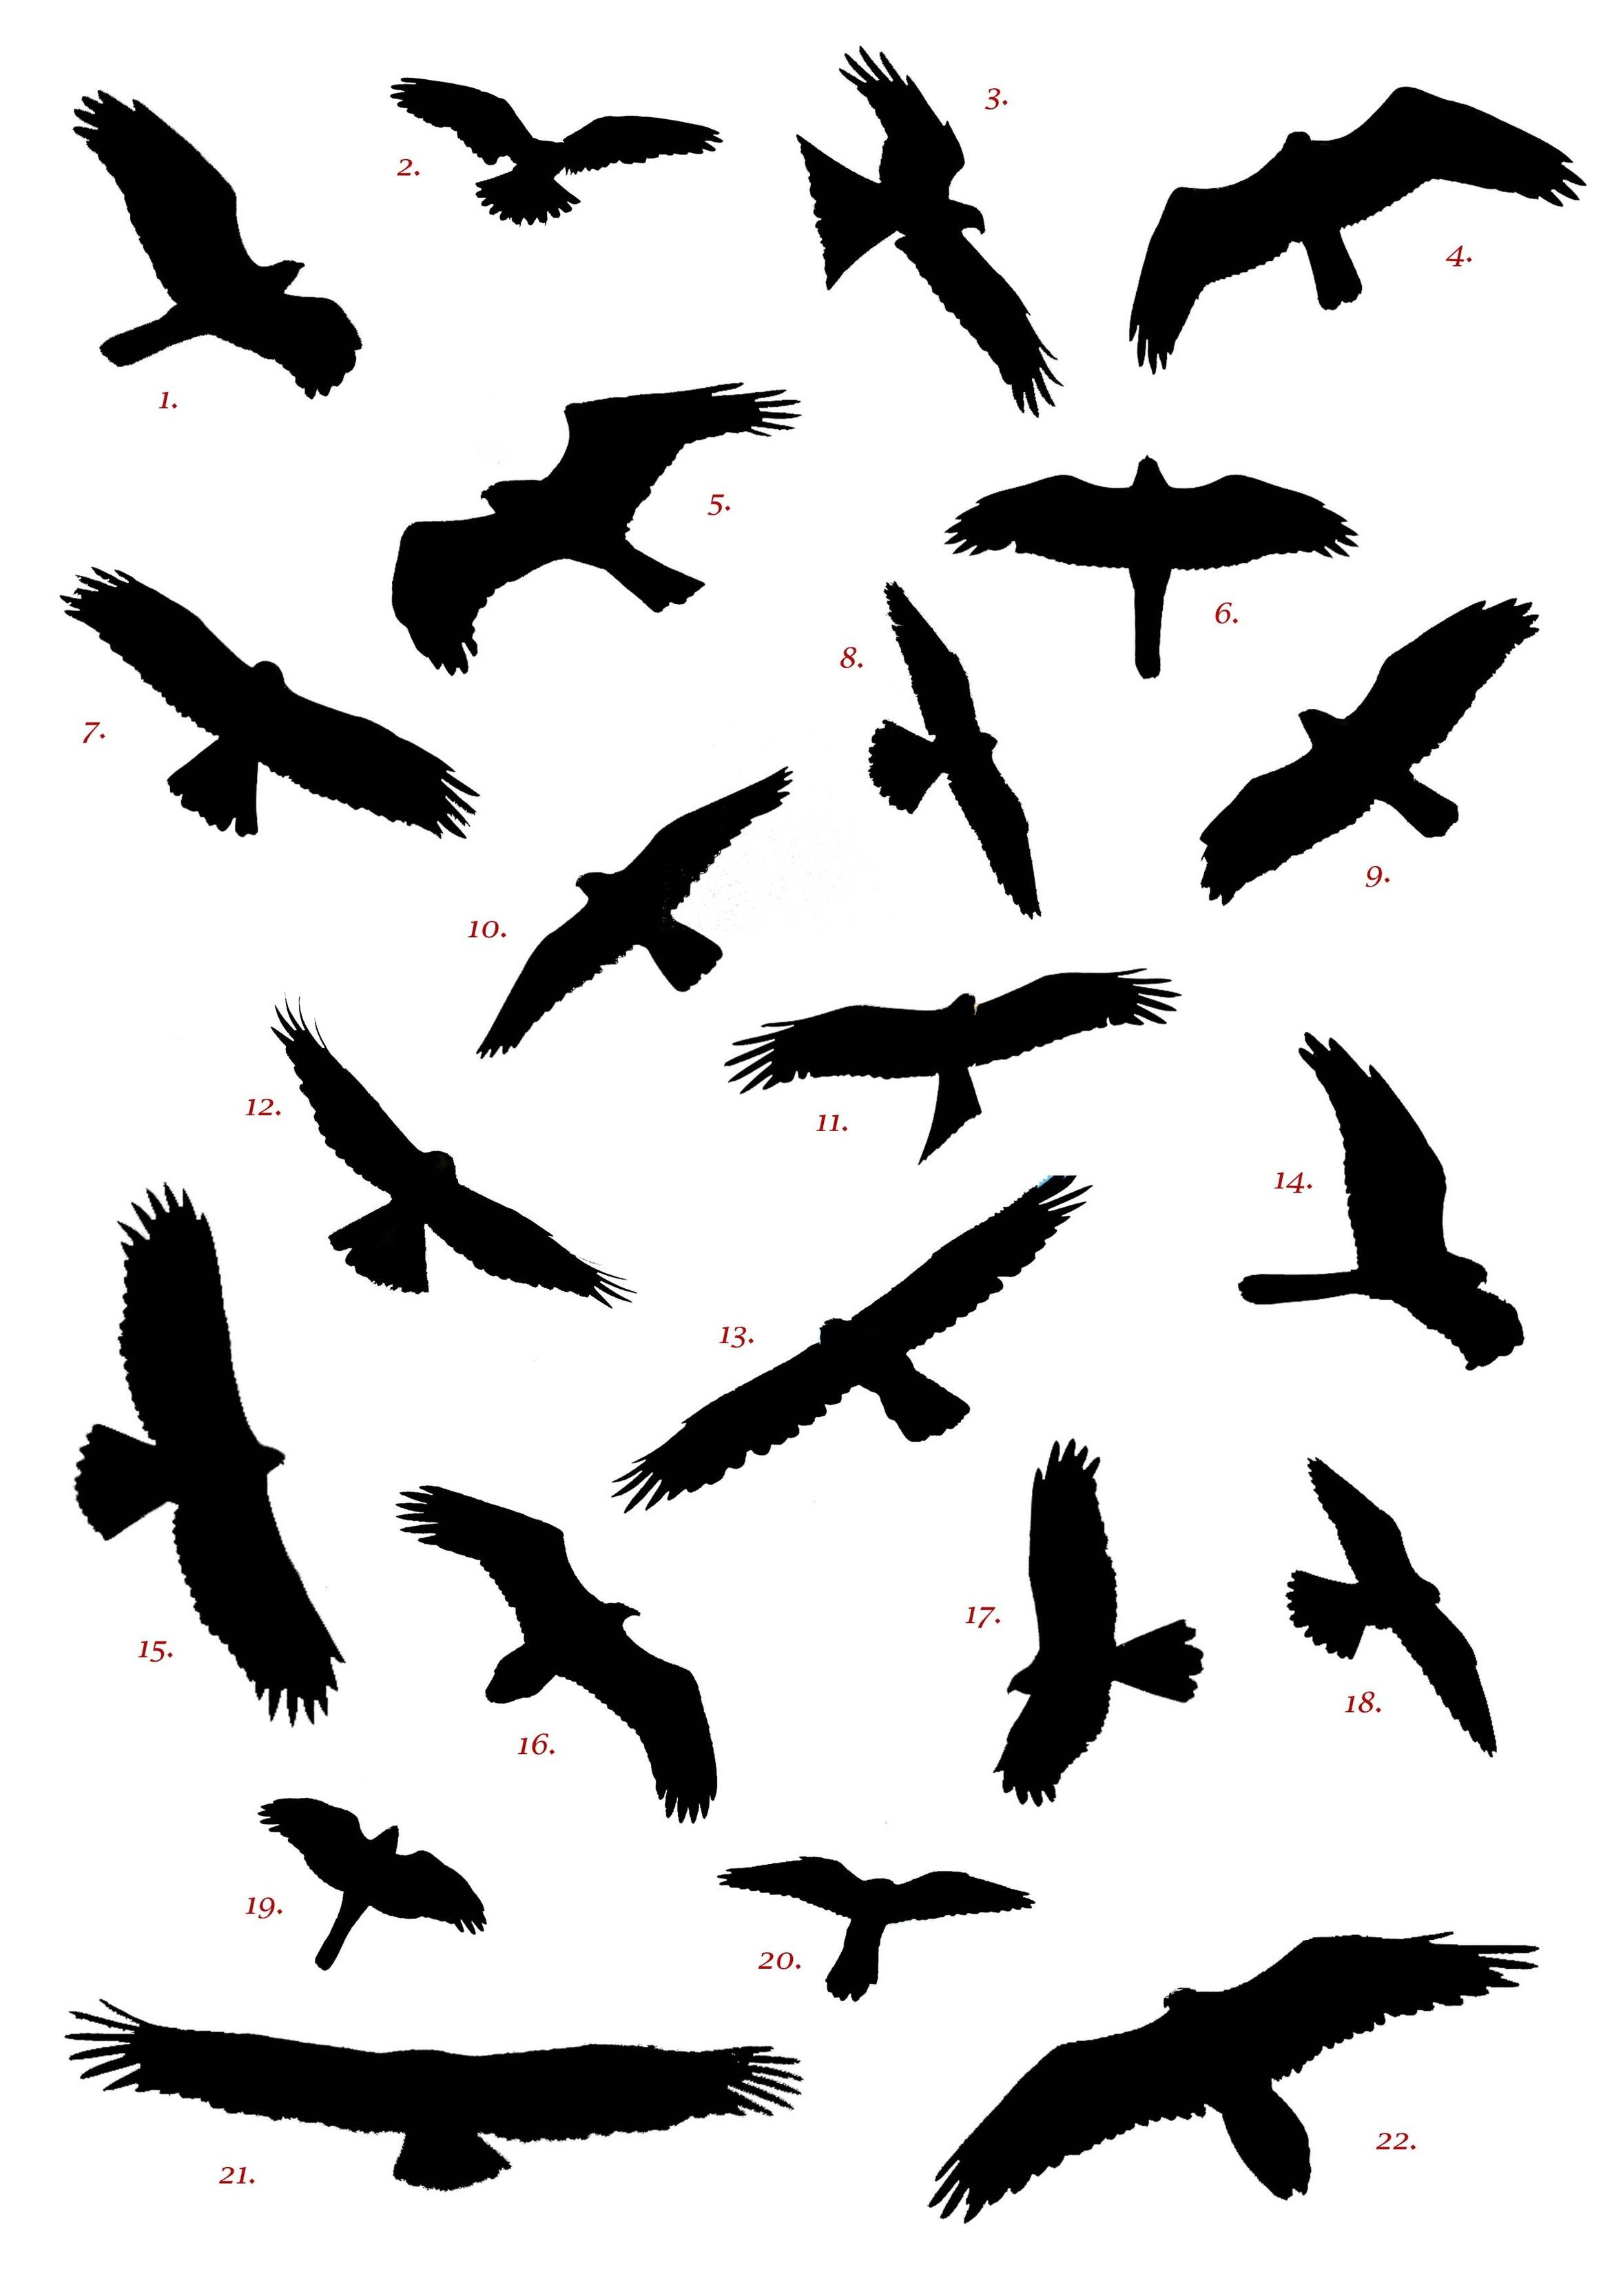 Birds Flying Silhouette Tattoo Clipart Free To Use Clip Art Resource Flying Bird Silhouette Bird Silhouette Birds Flying